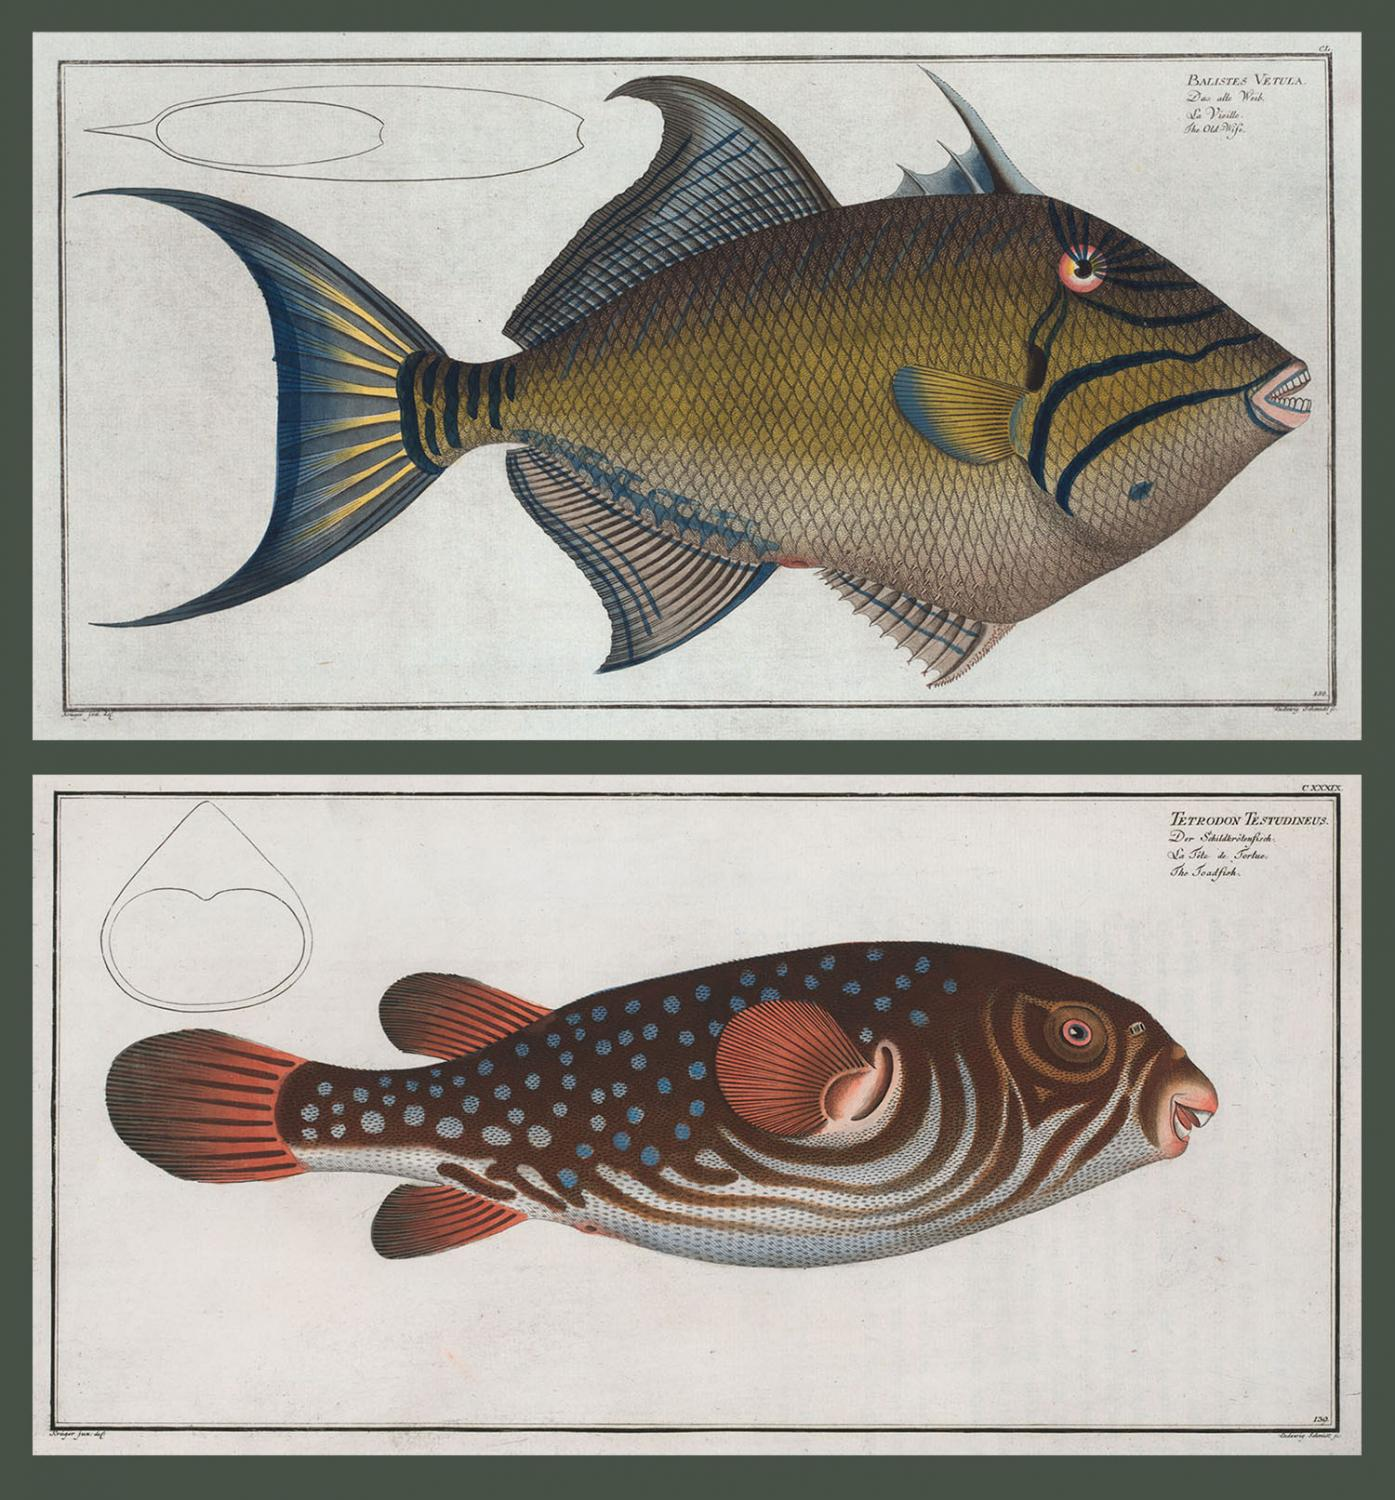 <i>Balistes Vetula, The Old-Wife</i>. Bottom: <i>Tetrodon Testudineus, The Toadfish</i>. (Courtesy Rare Book Division, The New York Public Library, Digital Collections.)